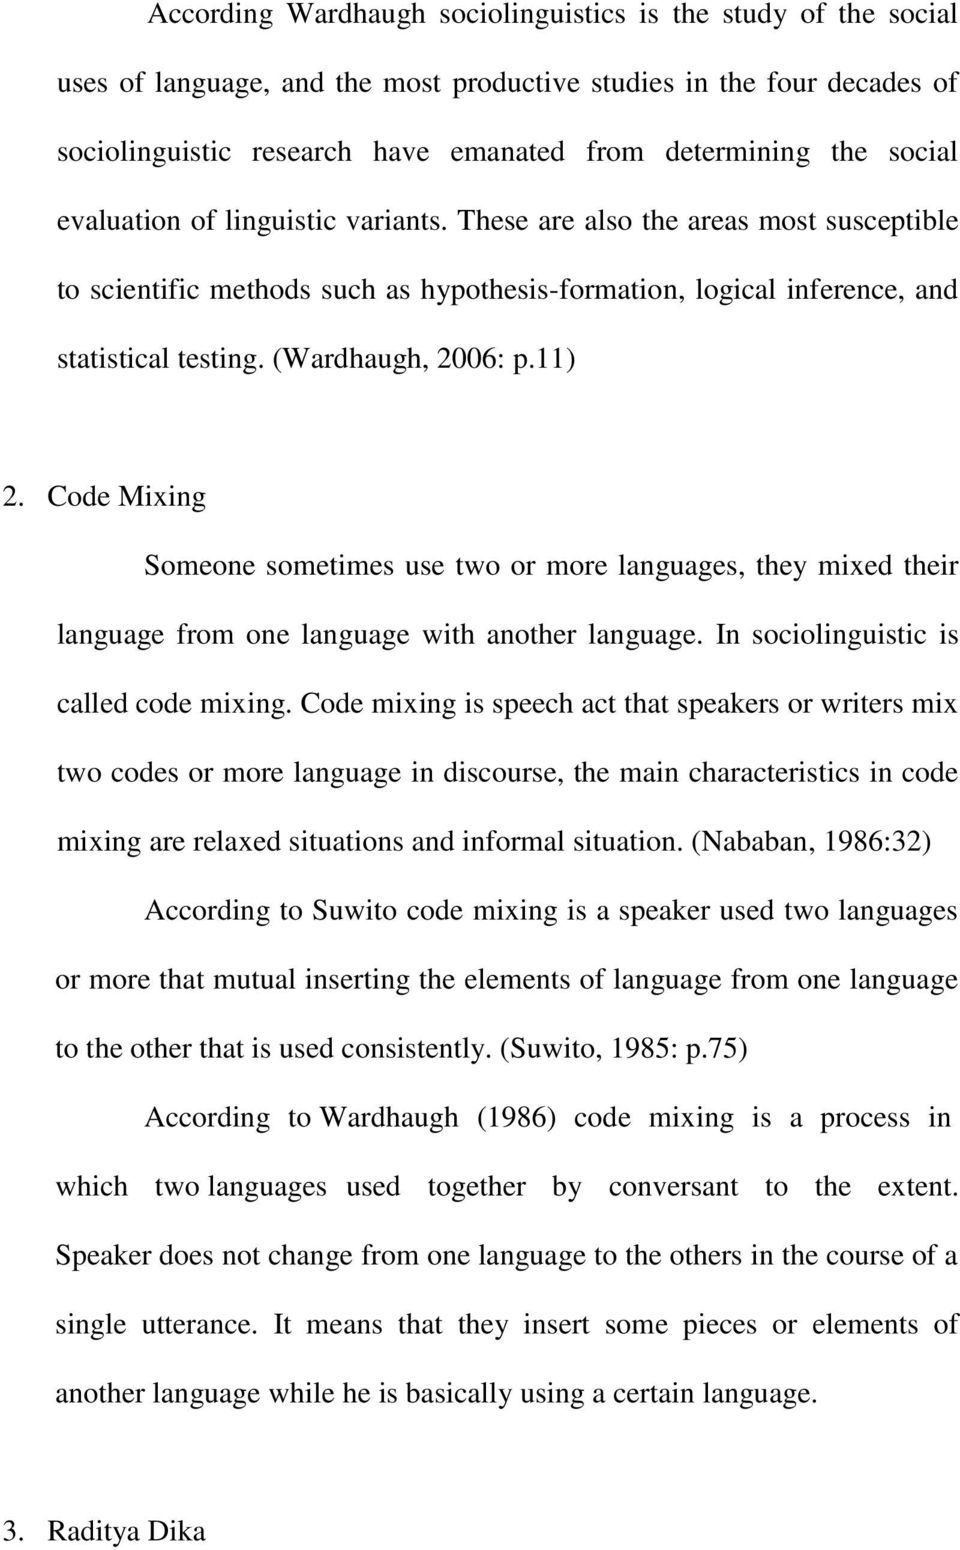 11) 2. Code Mixing Someone sometimes use two or more languages, they mixed their language from one language with another language. In sociolinguistic is called code mixing.